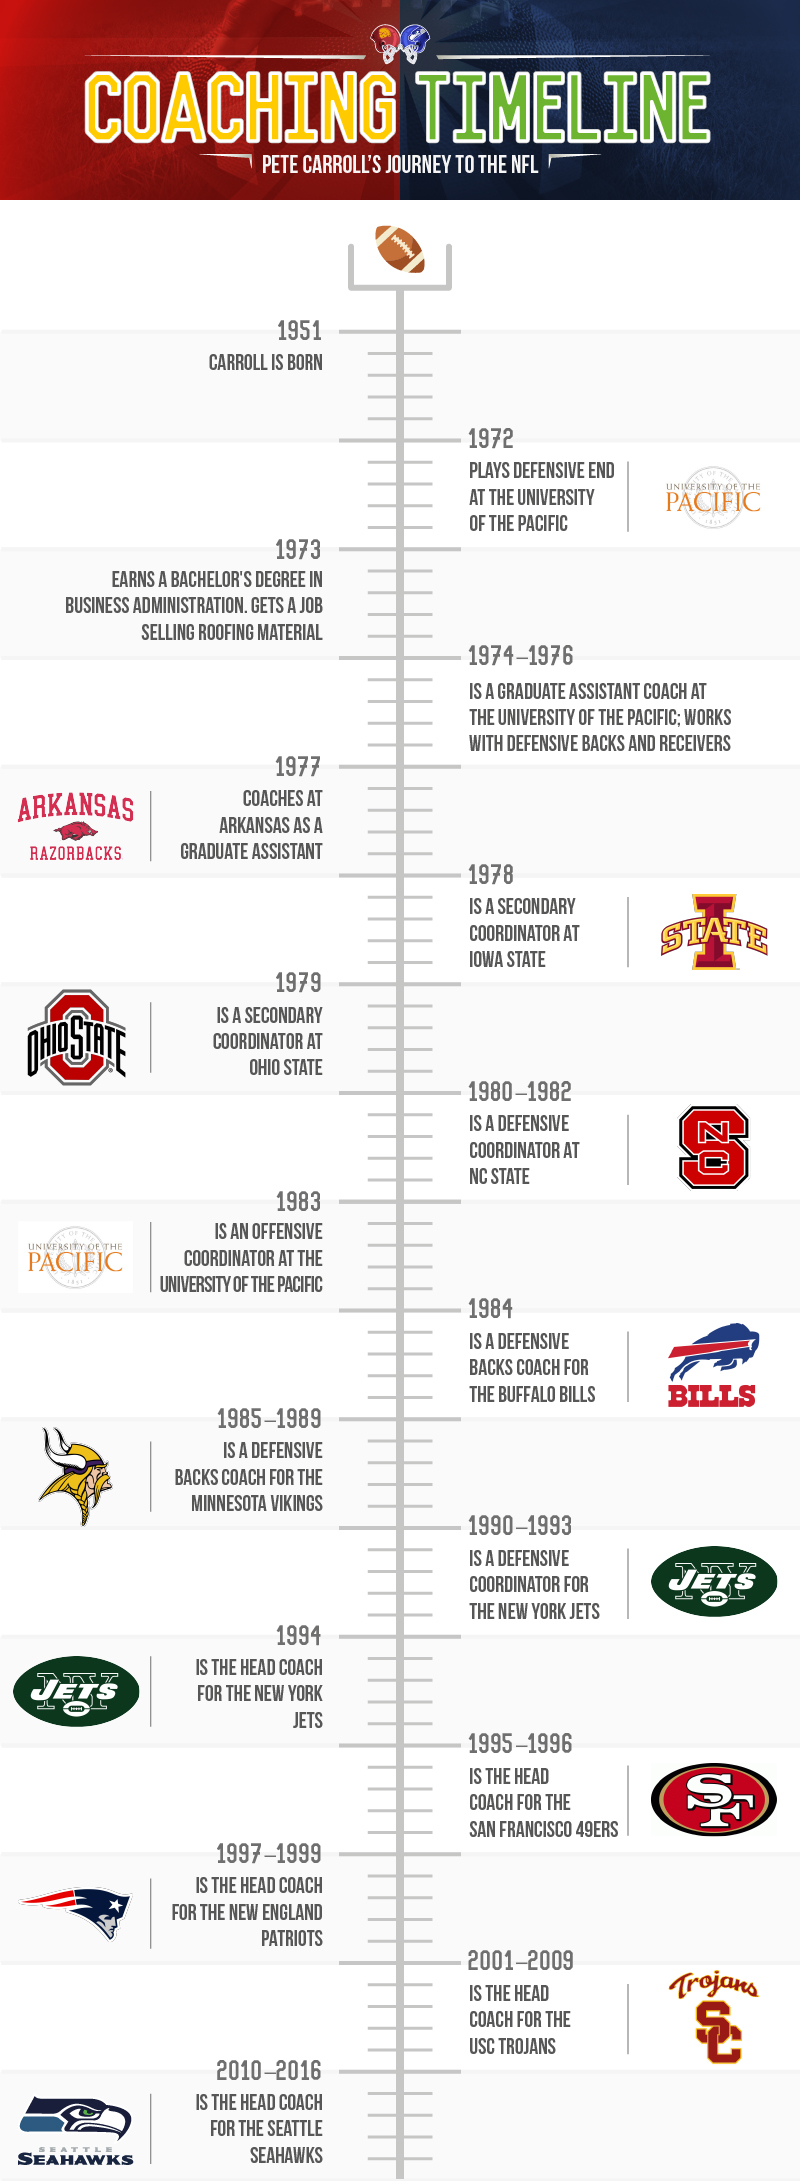 A timeline that shows in graphic form, Pete Caroll's head coaching journey.